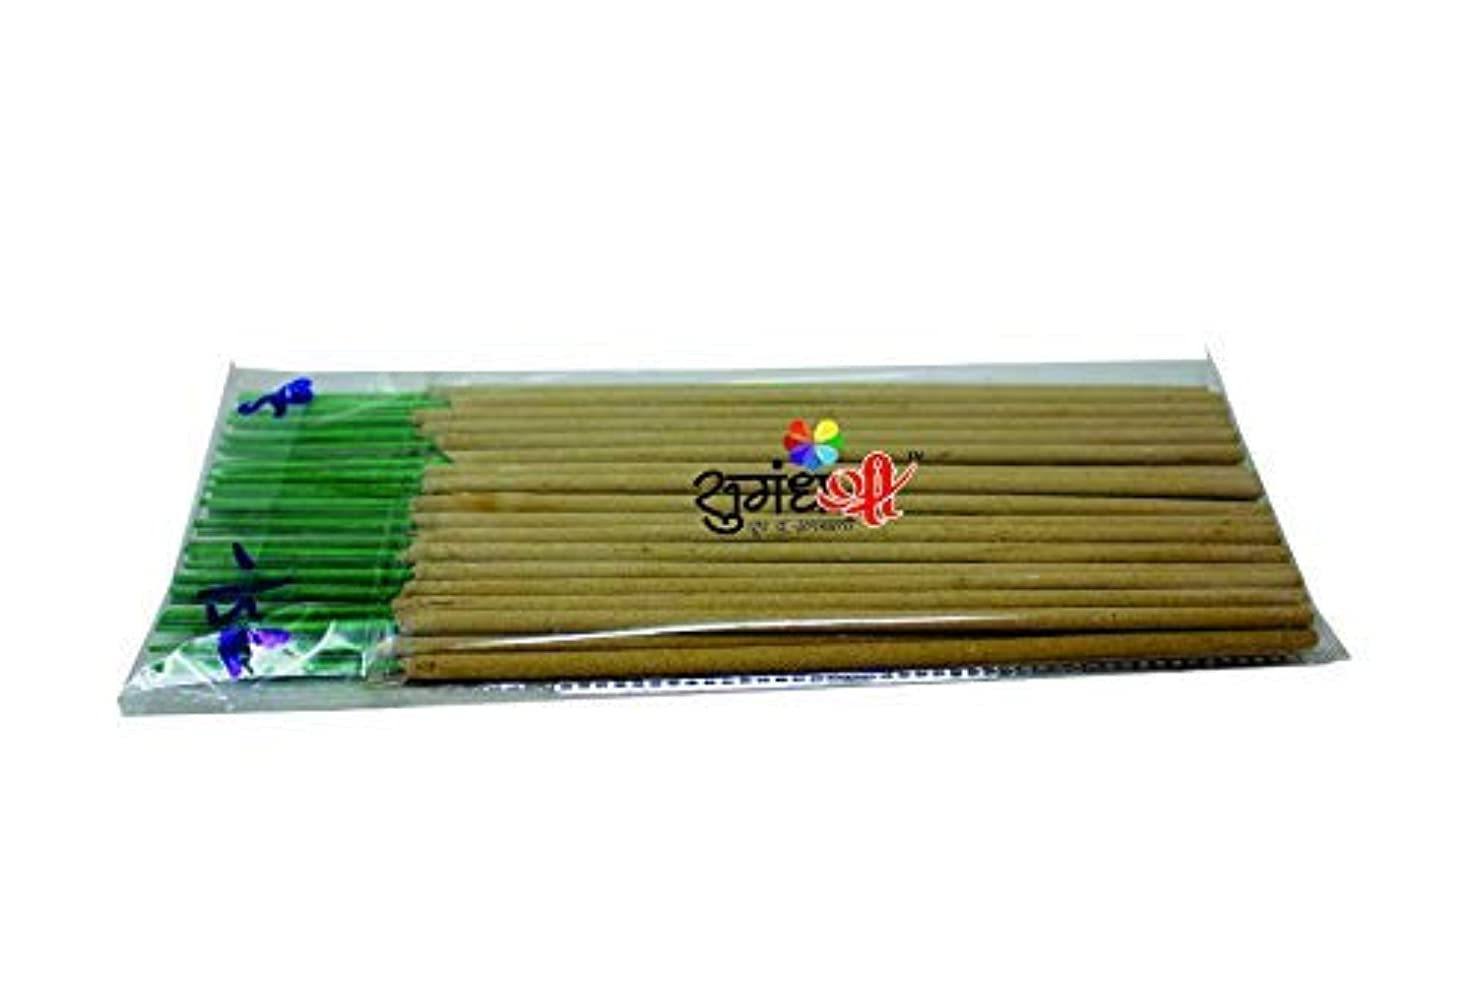 緩める節約する畝間Sugandh Shree Loban Natural Pure Incense Stick (100gm) (100 GMS x1 Approx 100 Pcs) Pure & Natural Lohban Agarbatti